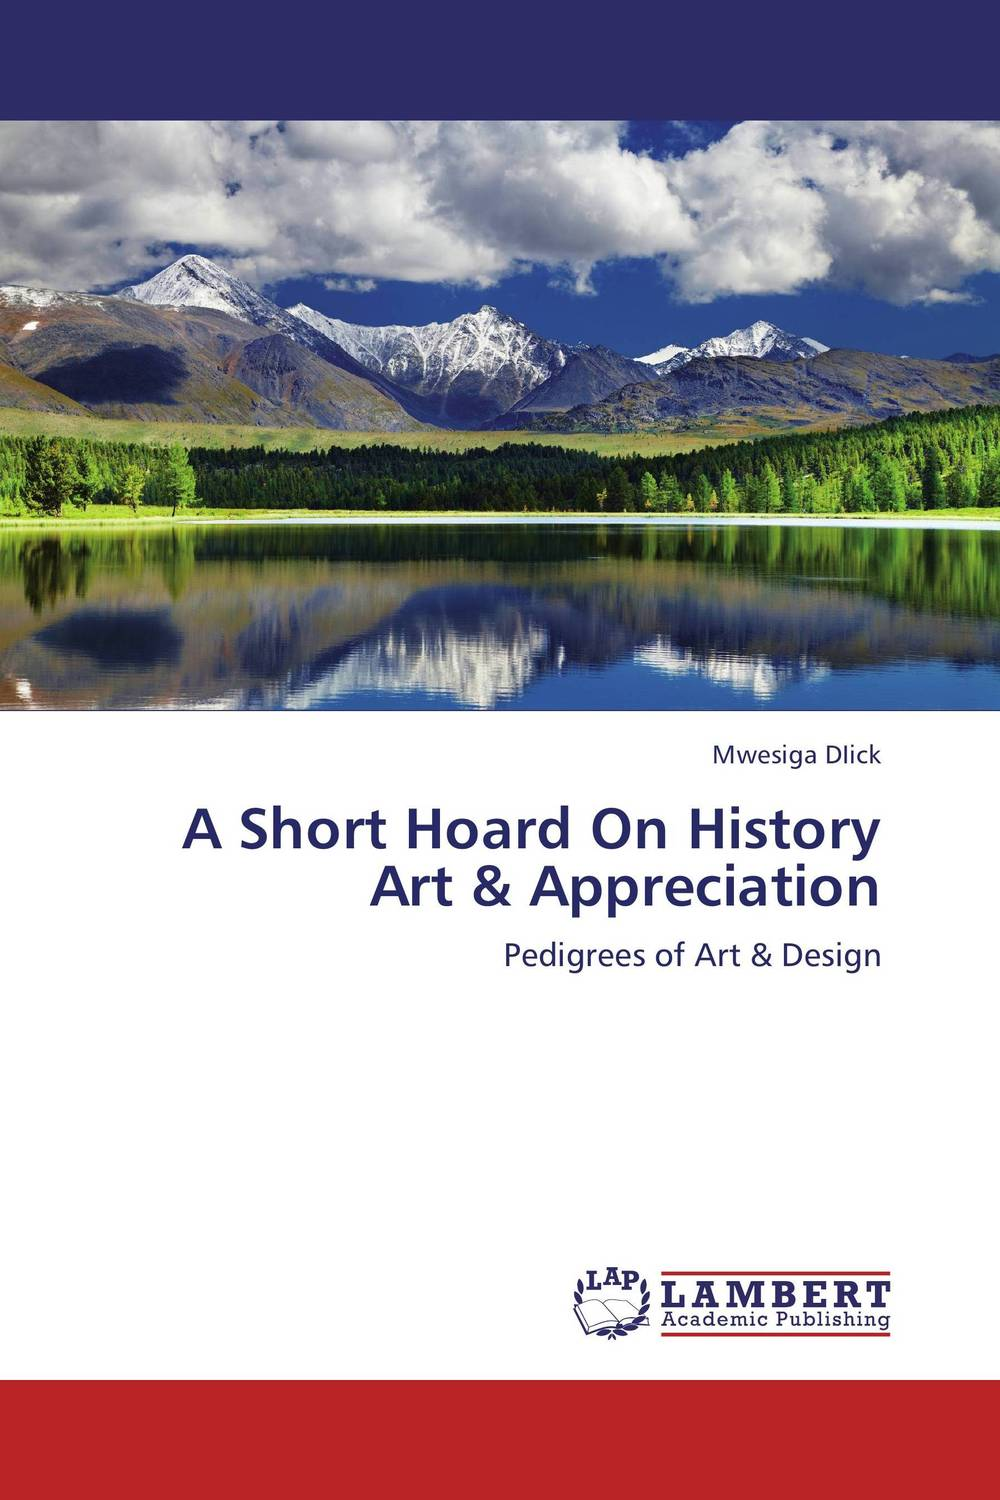 A Short Hoard On History Art & Appreciation body of art